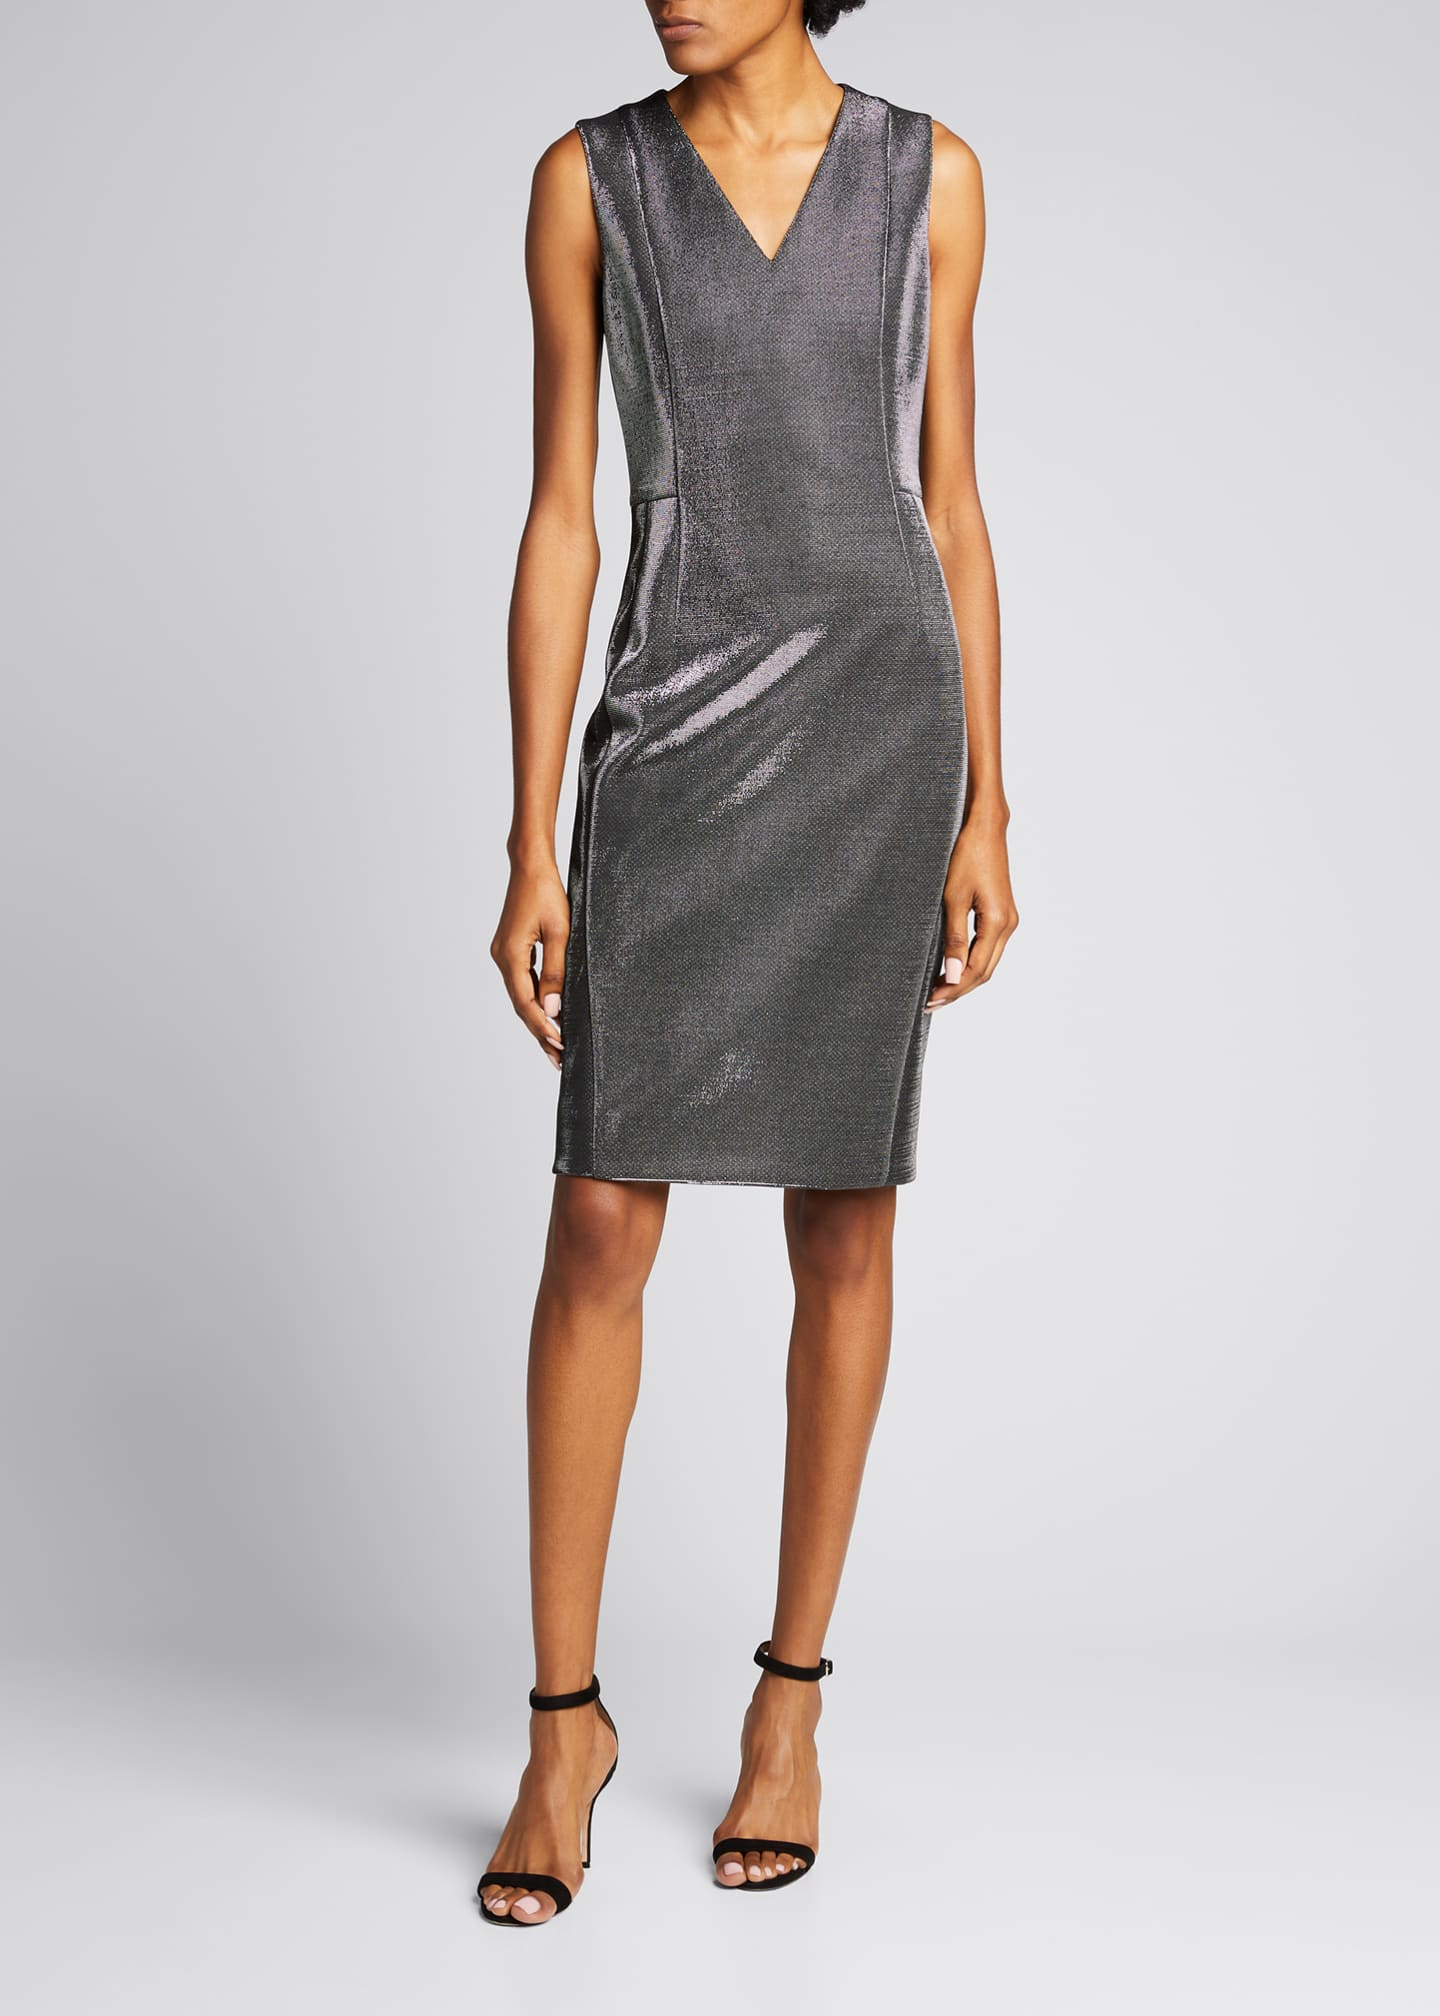 Image 3 of 5: Sleeveless V-Neck Metallic Cocktail Dress